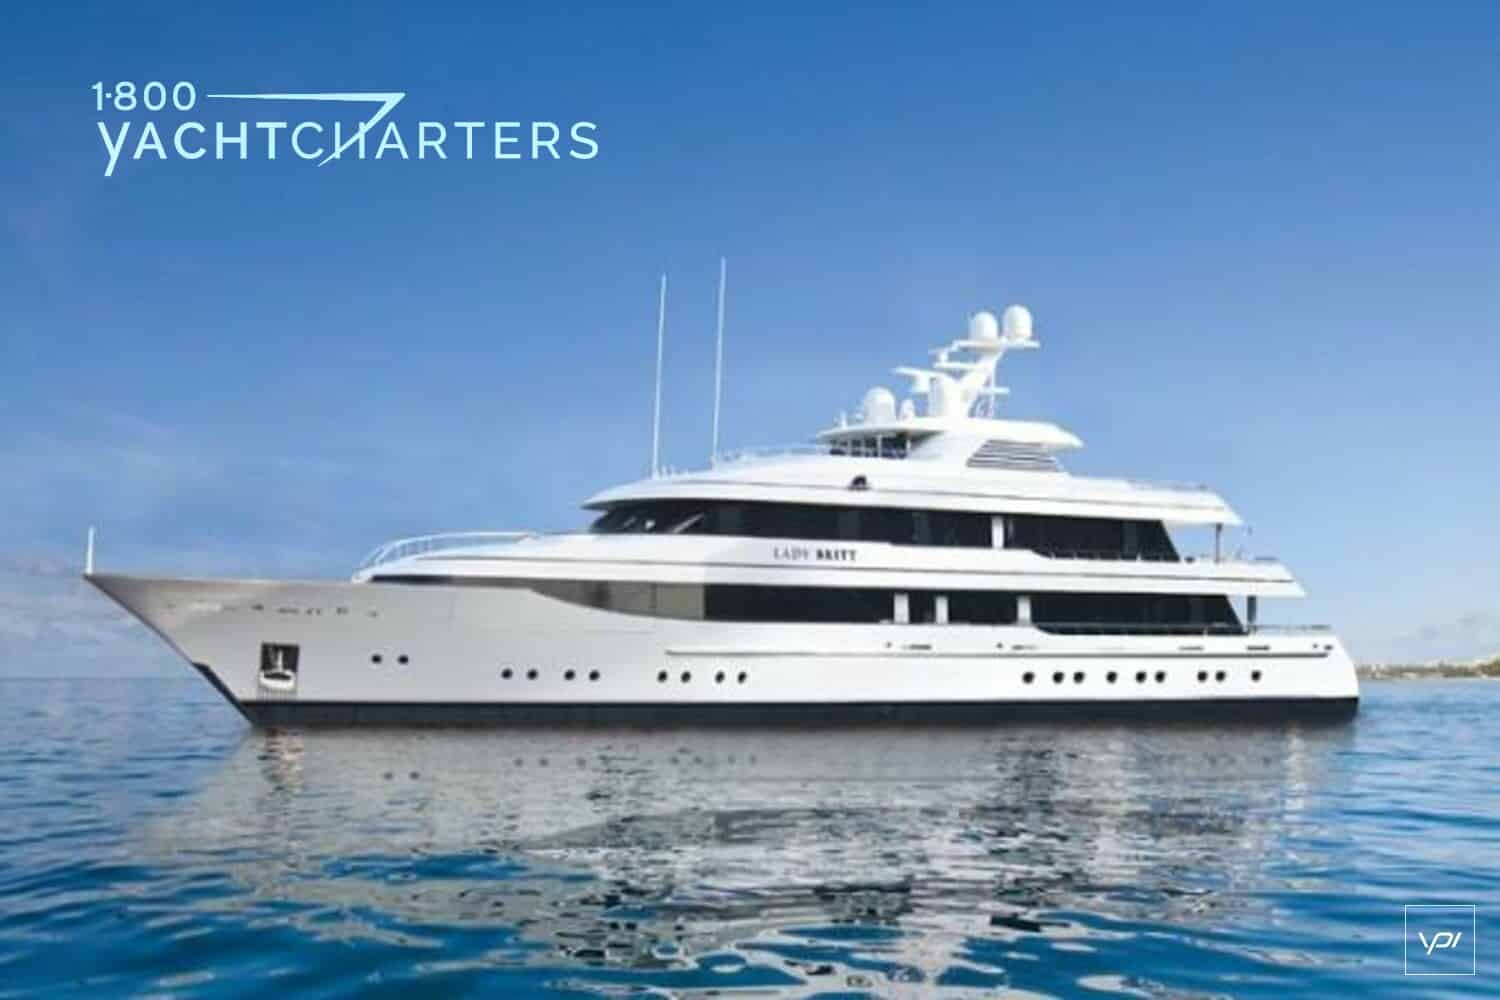 Profile of superyacht Lady Britt. She is facing the left side of the photograph. She is at anchor.